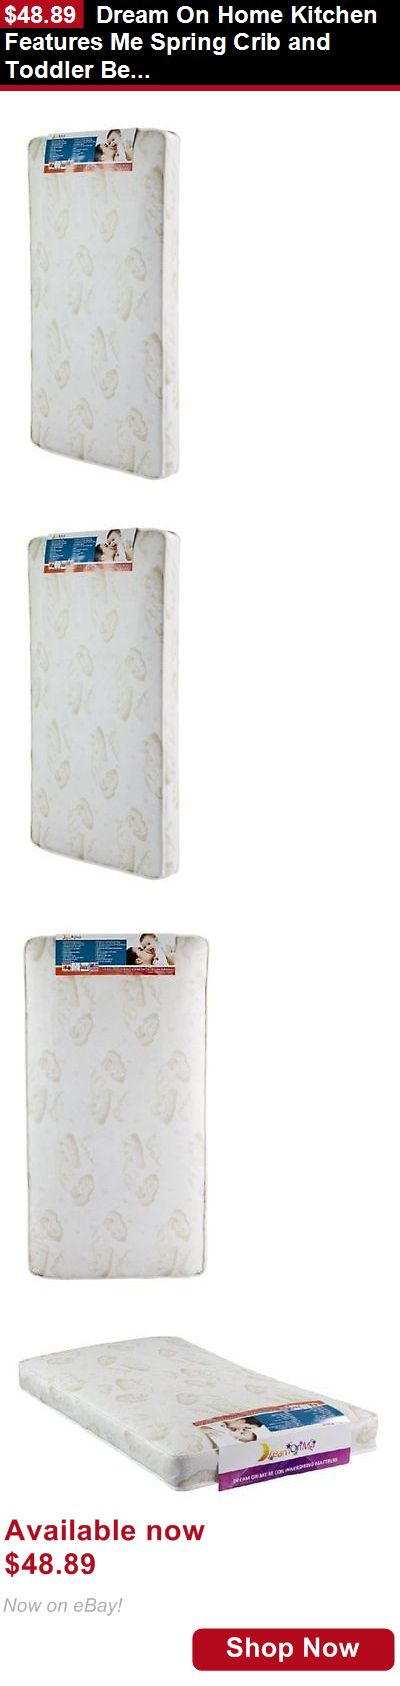 Mattress Pads And Covers: Dream On Home Kitchen Features Me Spring Crib And Toddler Bed Mattress, Twilight BUY IT NOW ONLY: $48.89